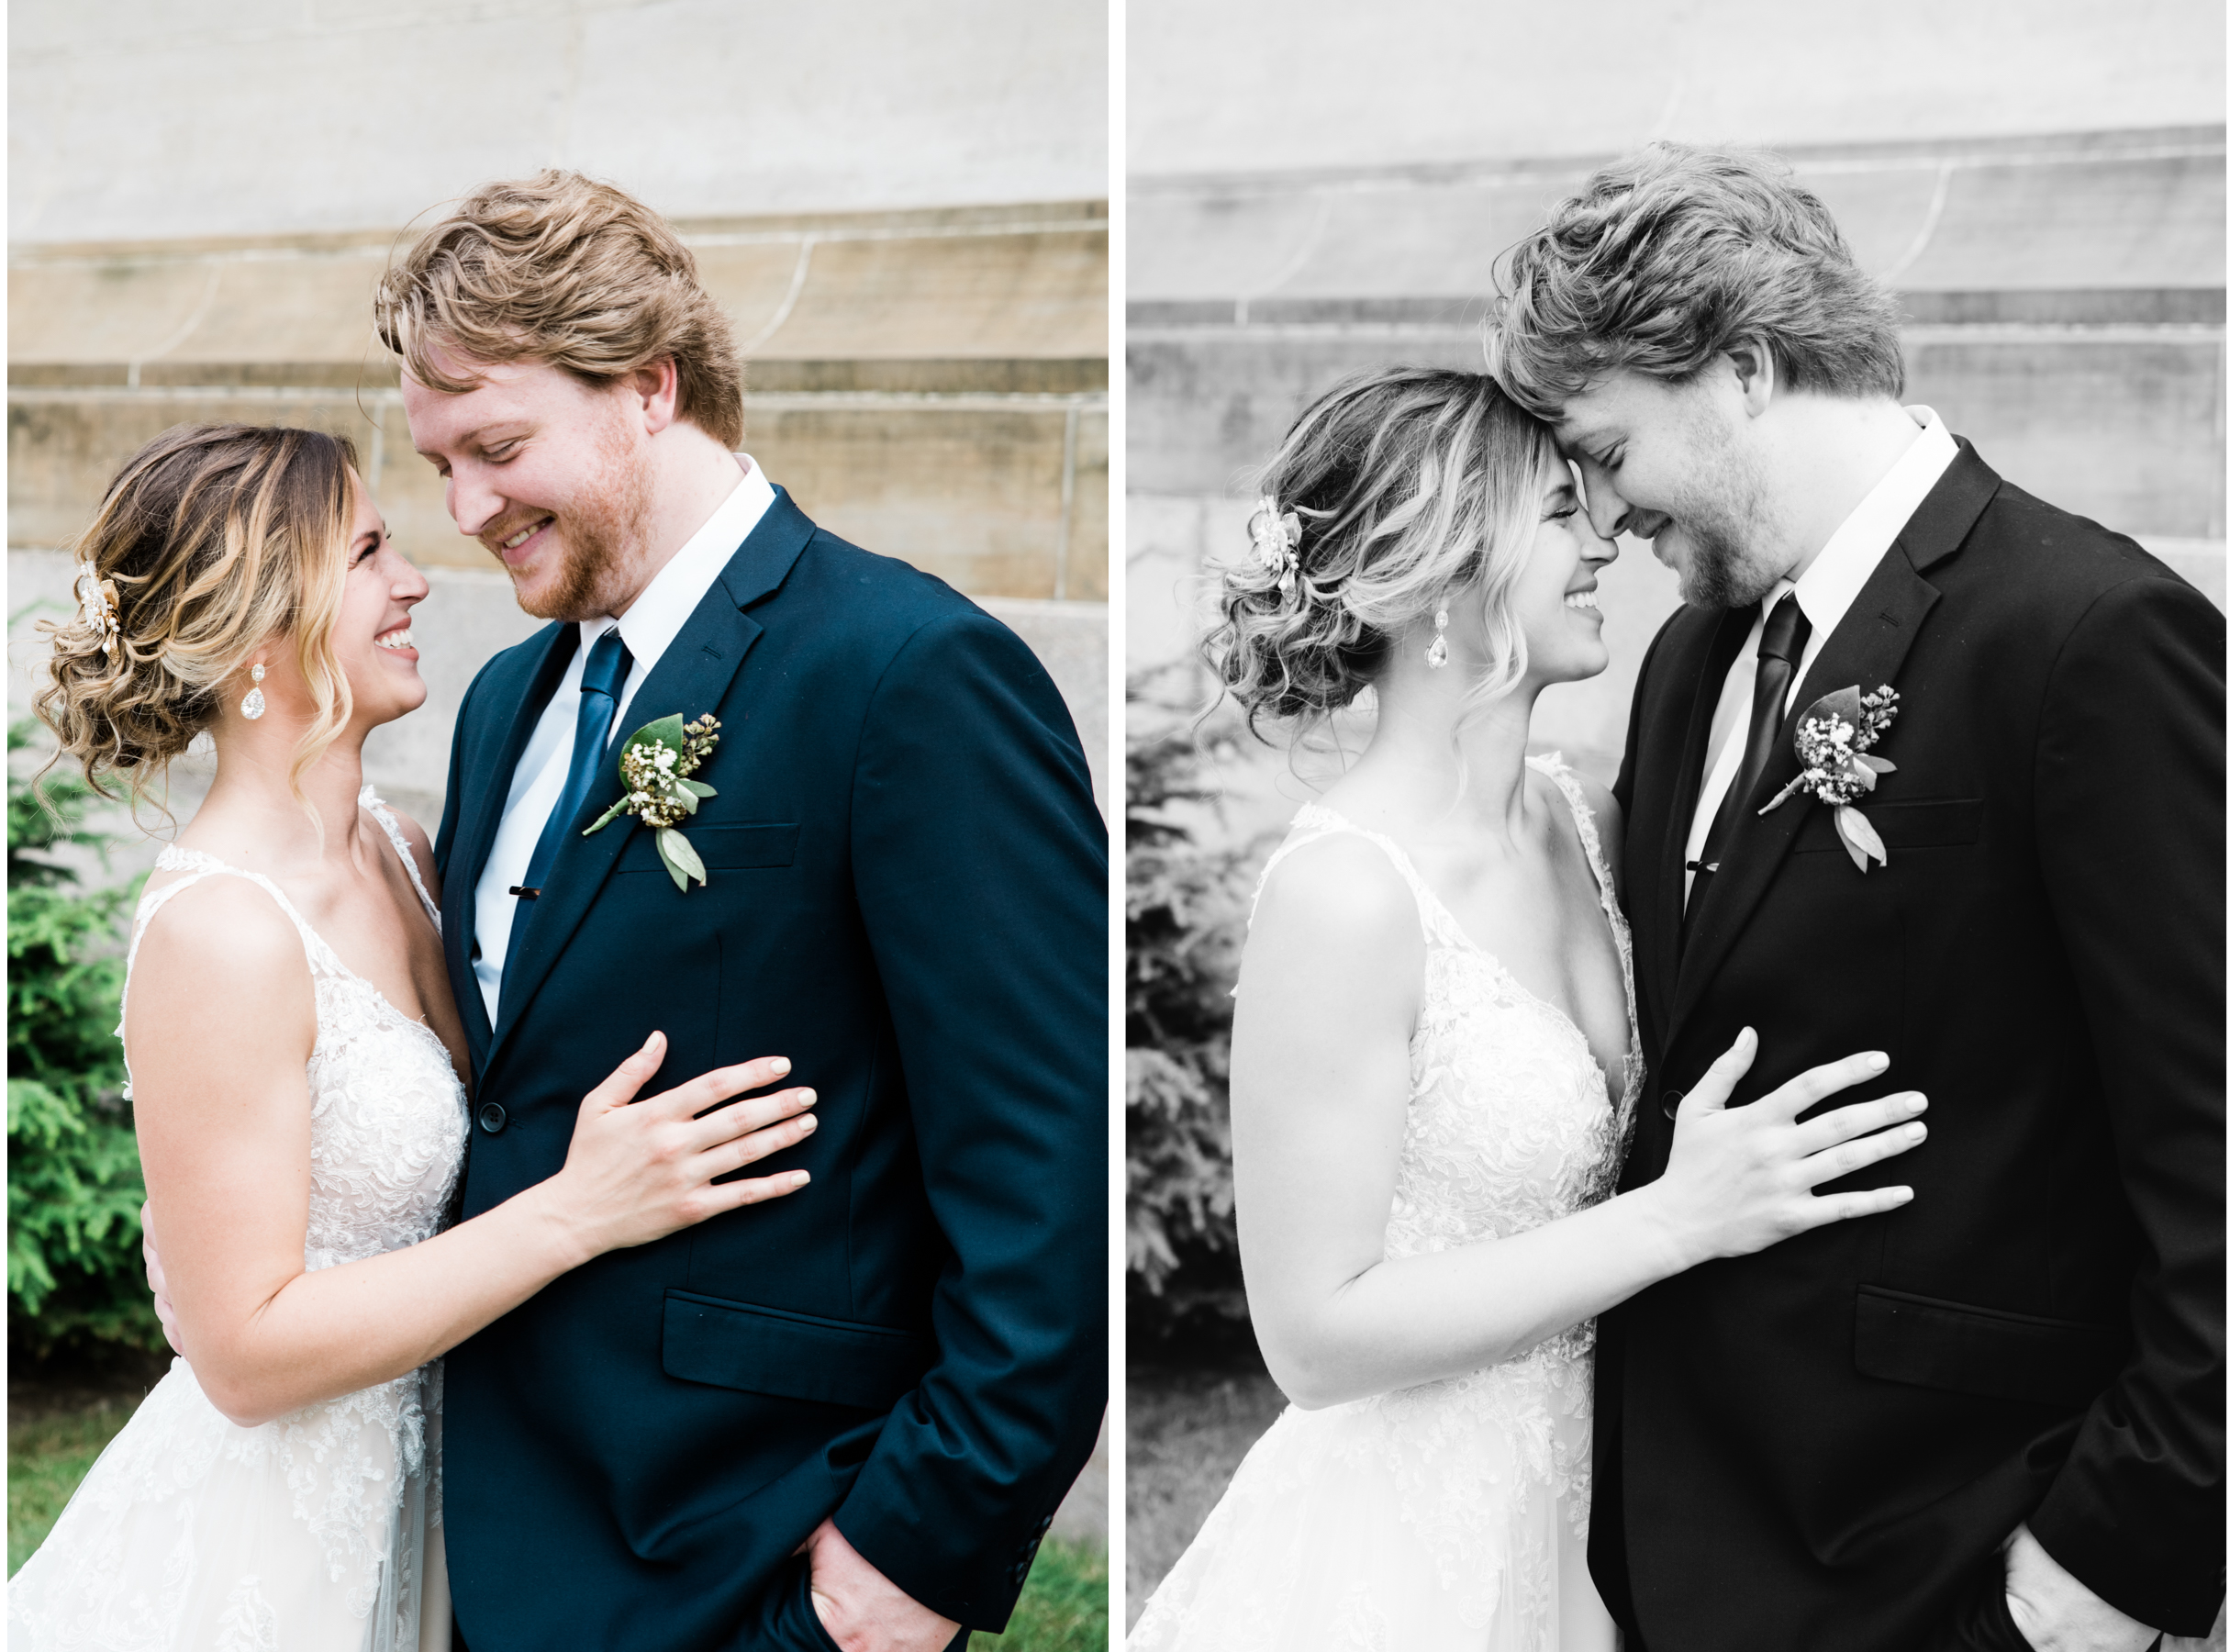 wedding portraits pittsburgh wedding photographer mariah fisher photography.jpg